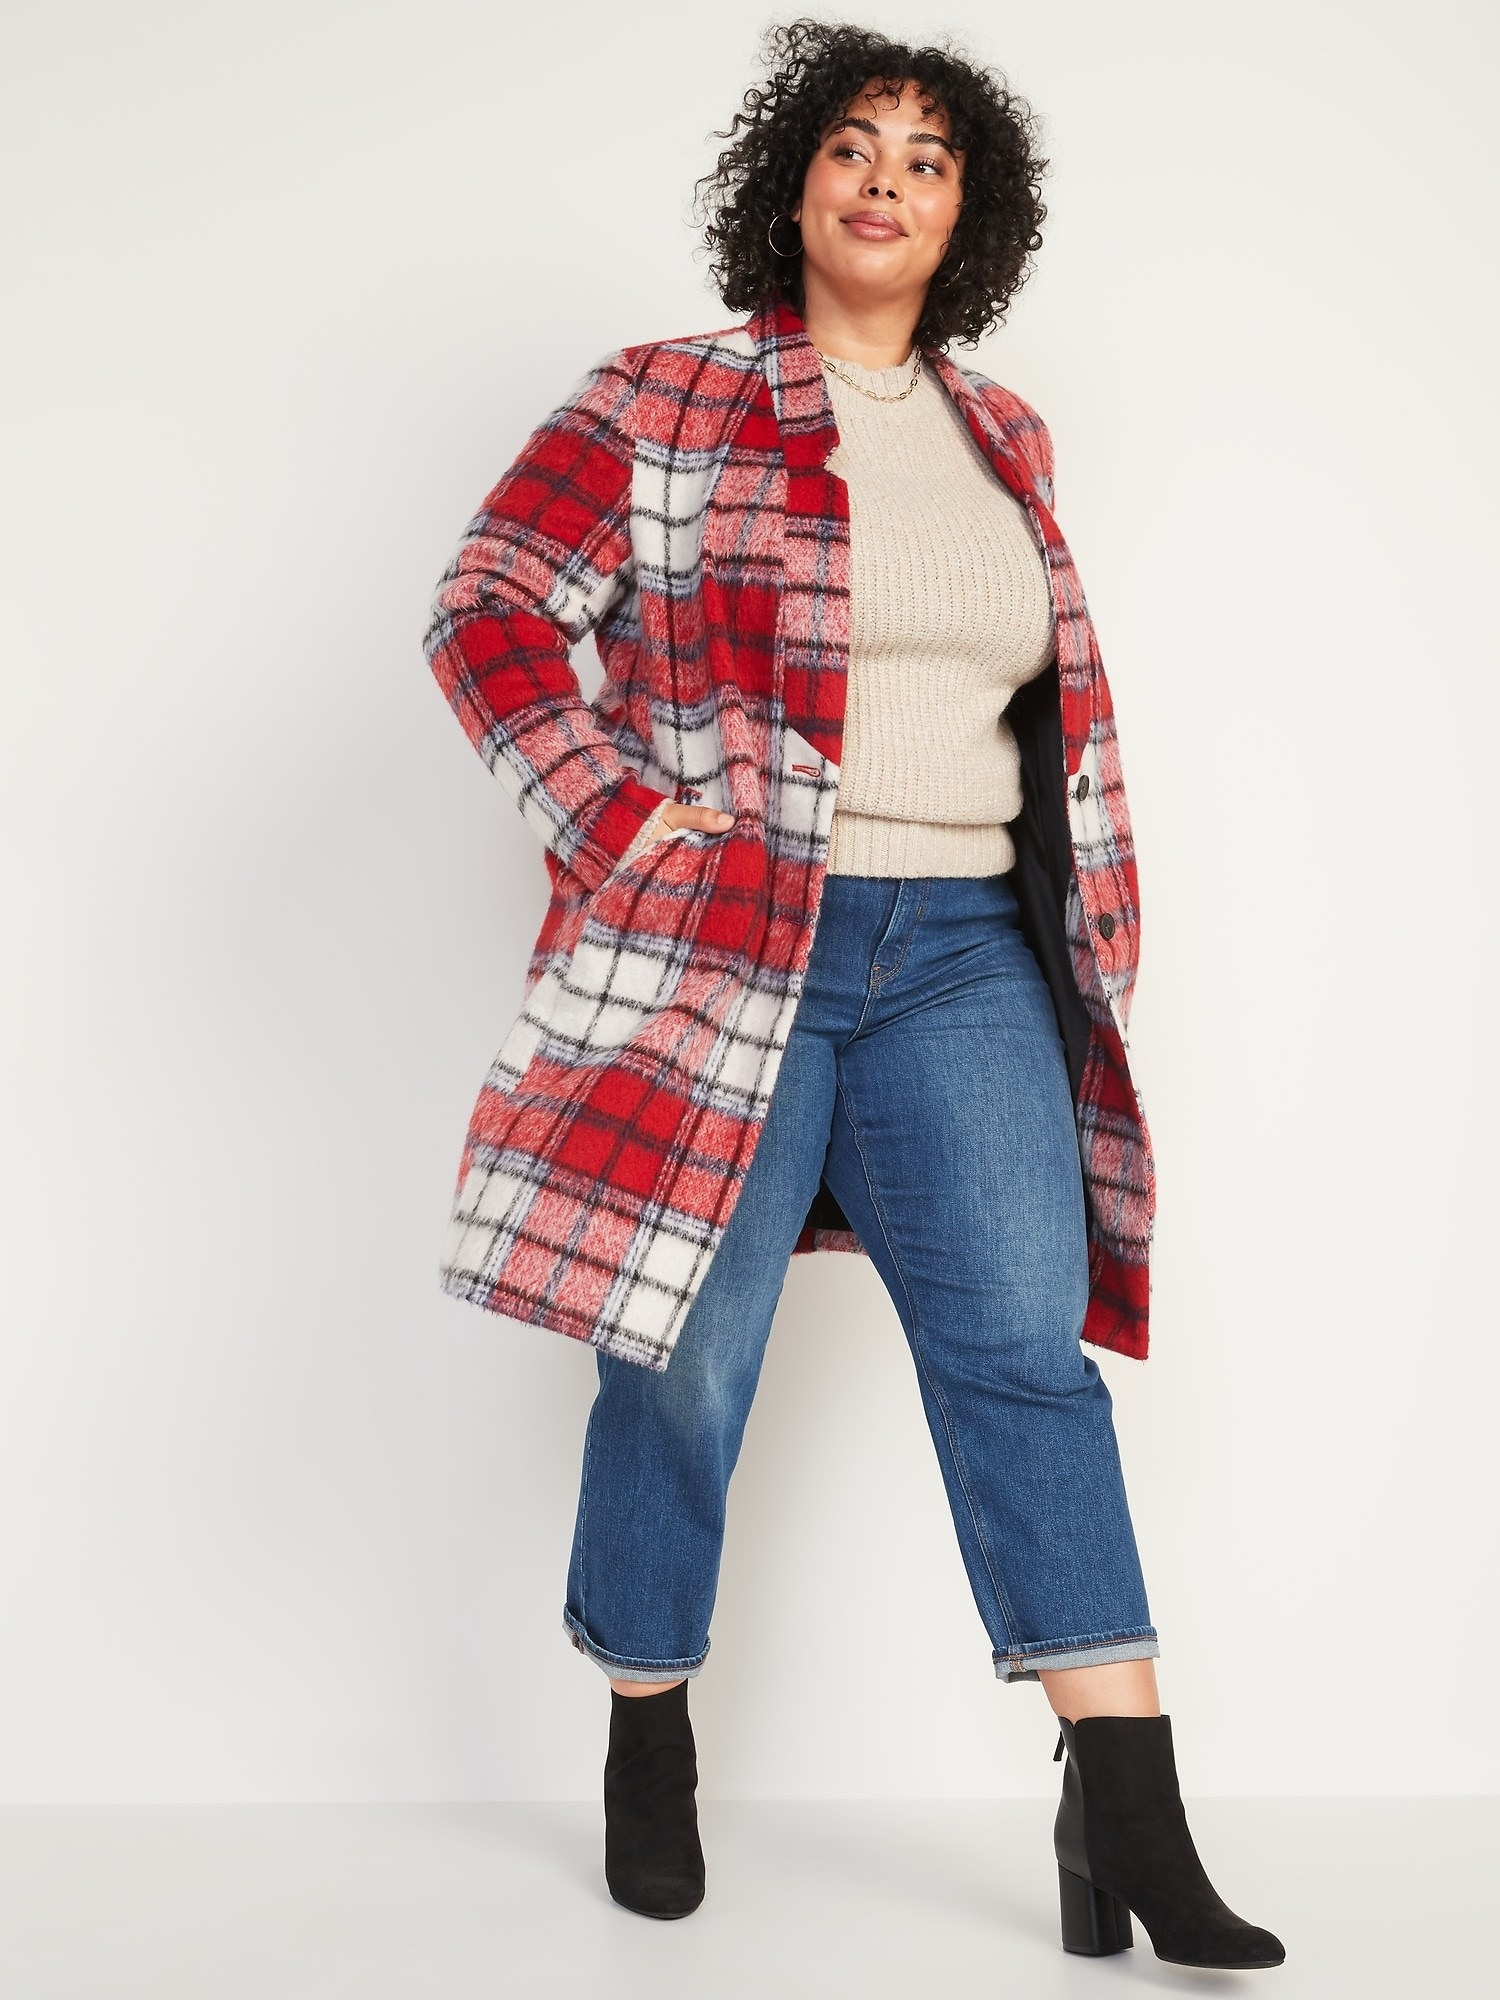 A model wearing the red and white plaid coat that hits just above the knee with jeans and booties